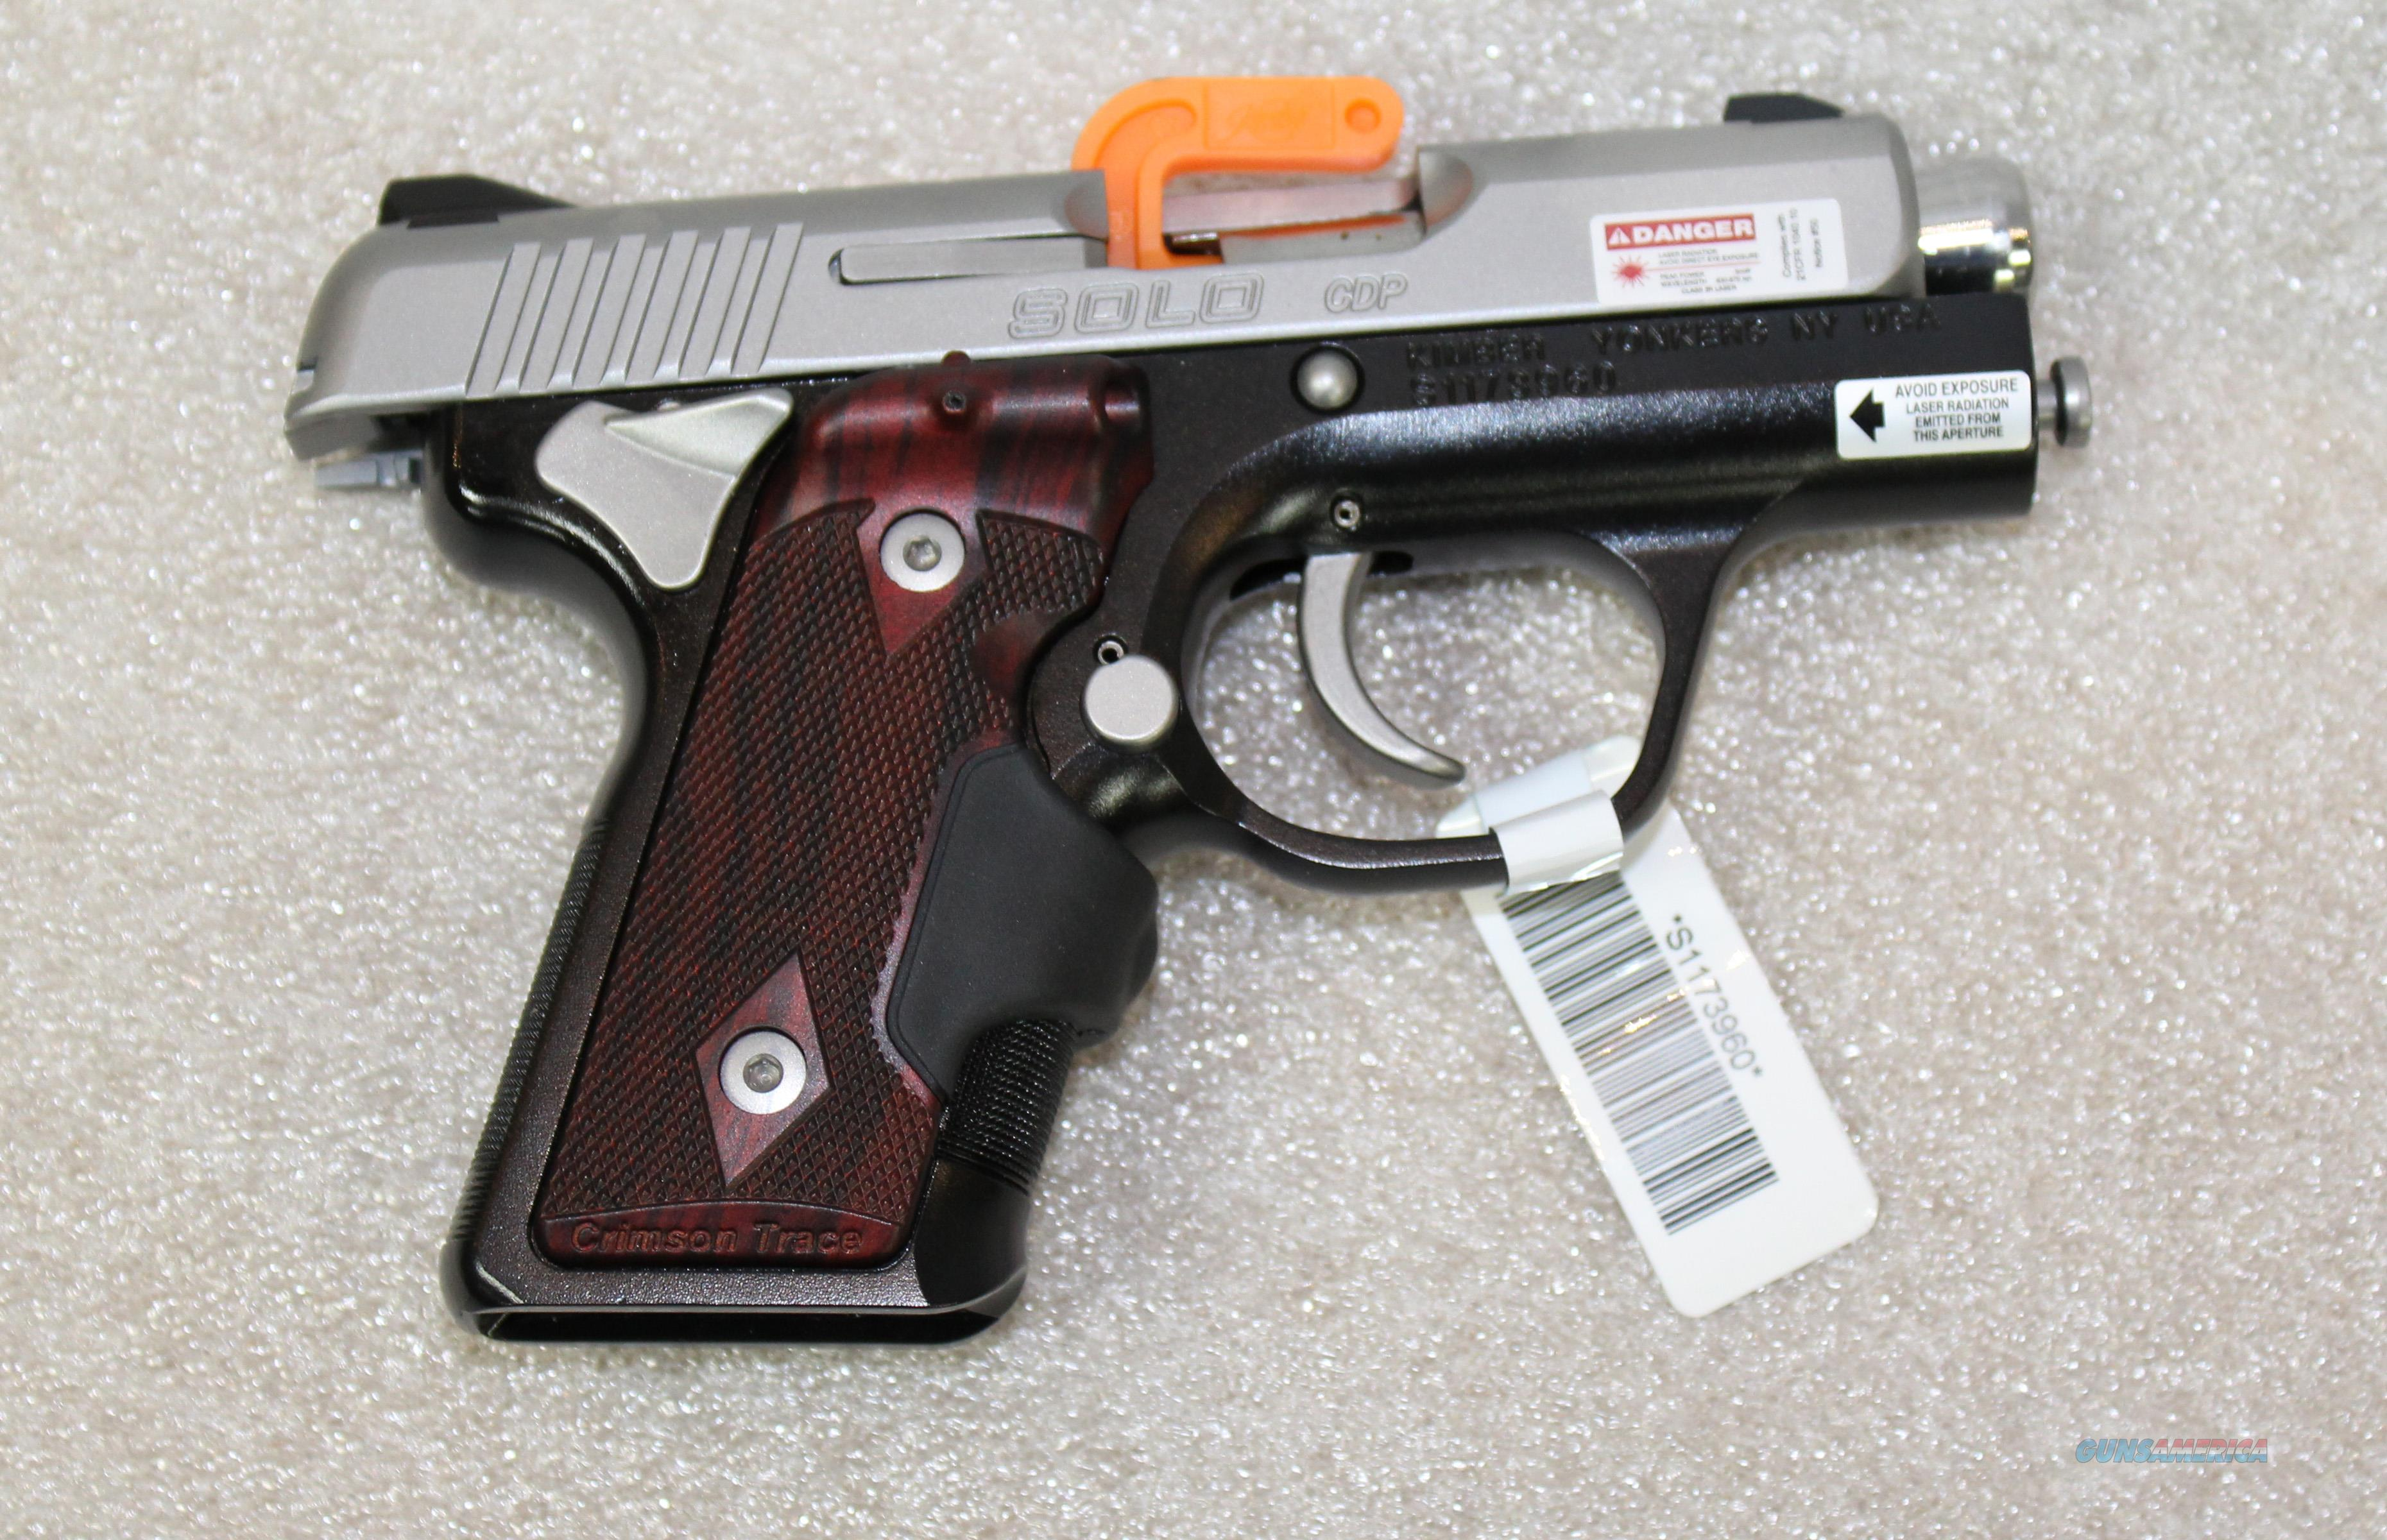 KIMBER SOLO CDP 9MM TWO TONE WITH CRIMSON TRACE LASER GRIPS NEW IN BOX  Guns > Pistols > Kimber of America Pistols